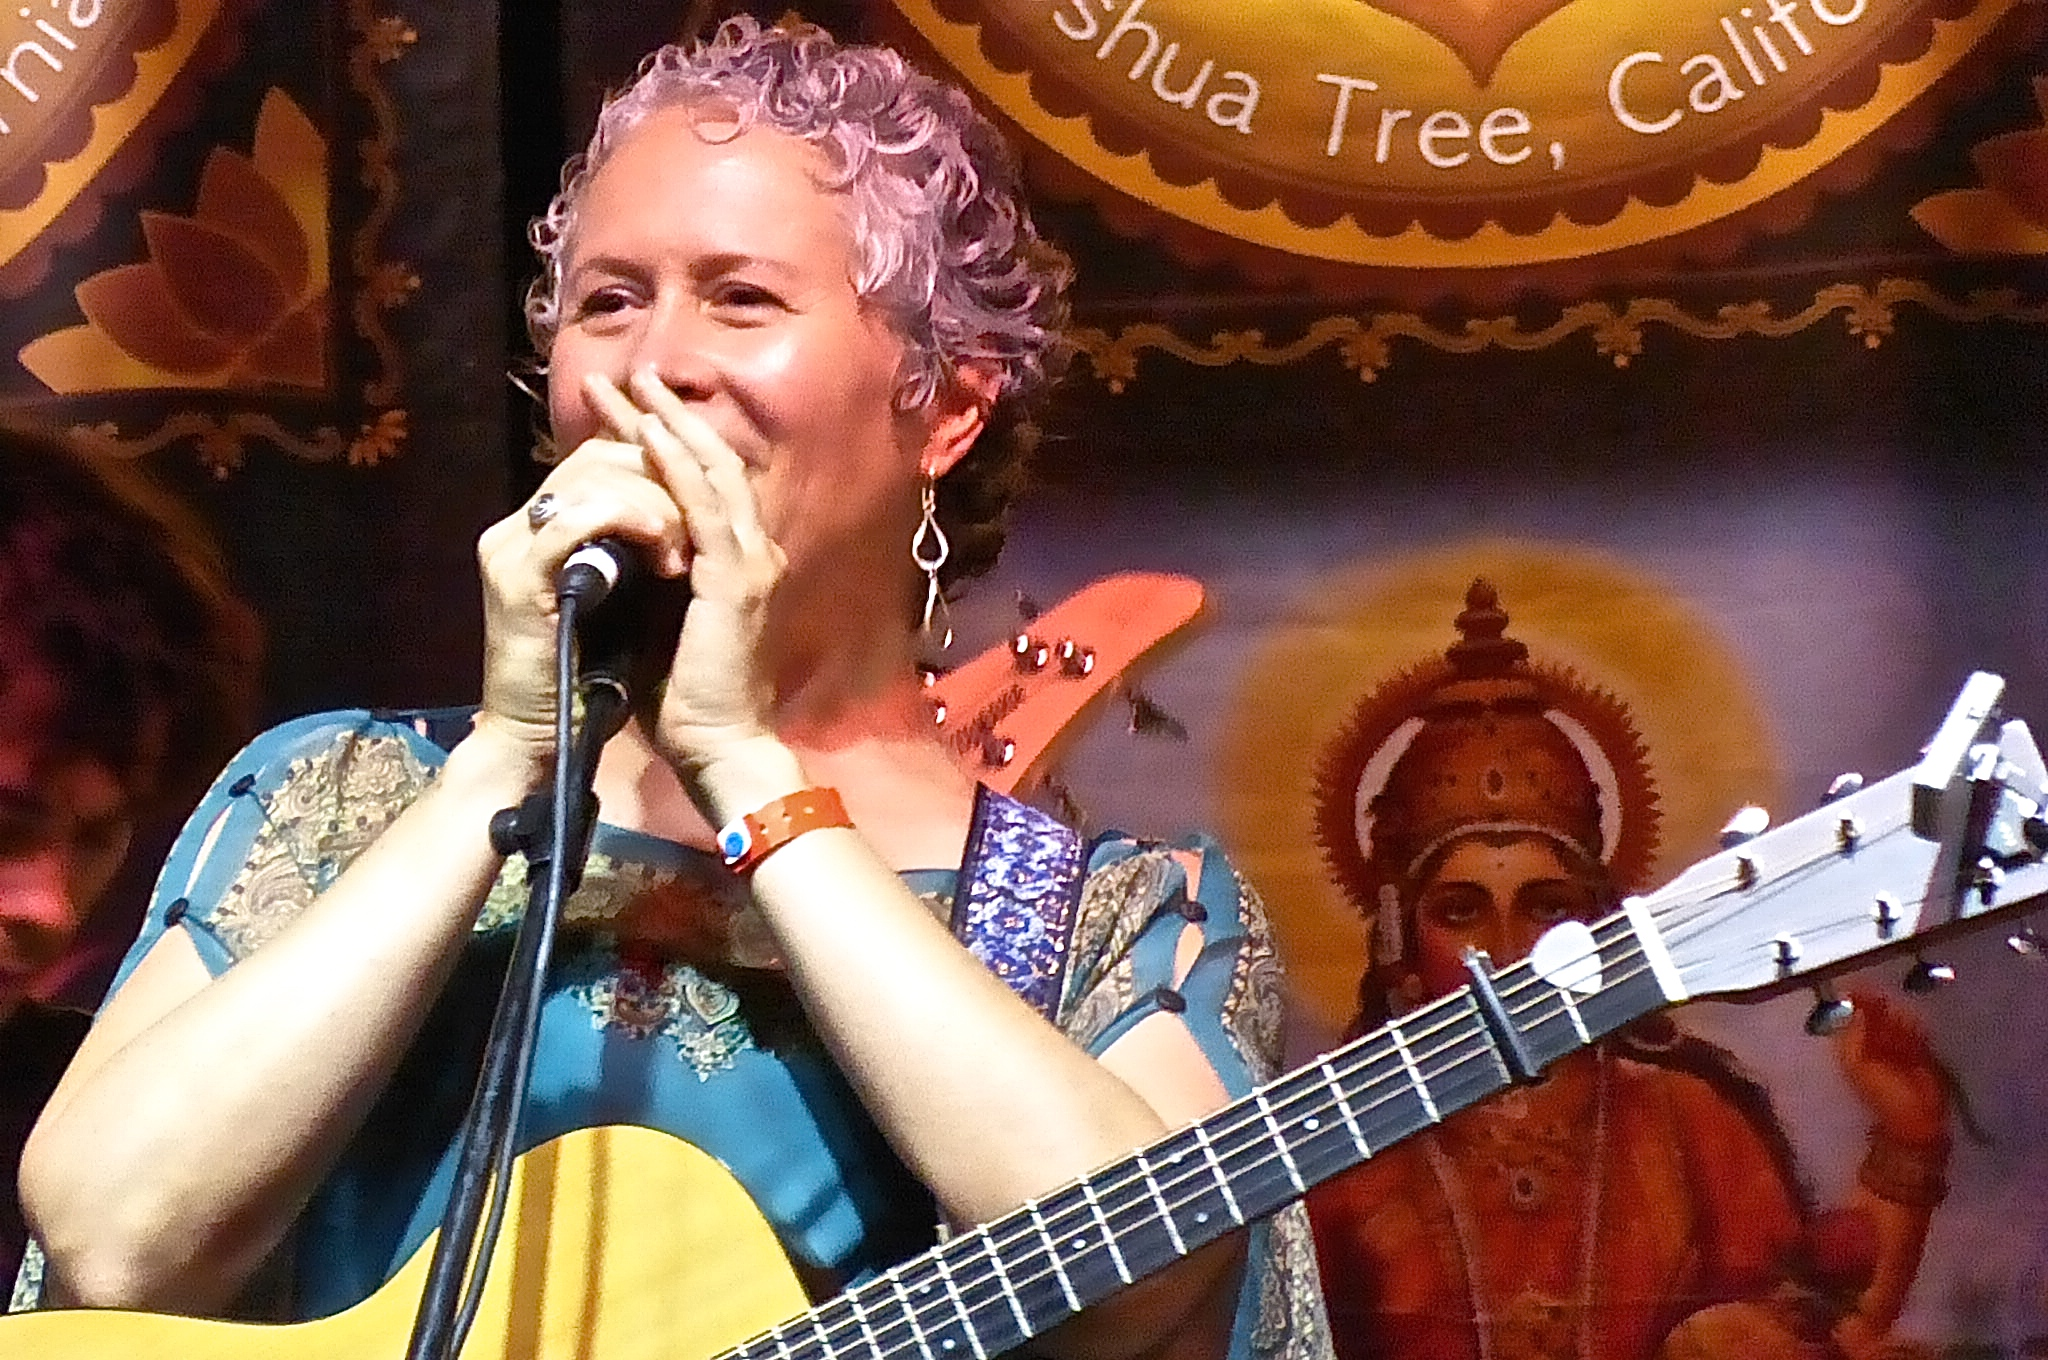 Brenda at Bhakti Fest Midwest 2014 - photo by Maie P. Jyoti